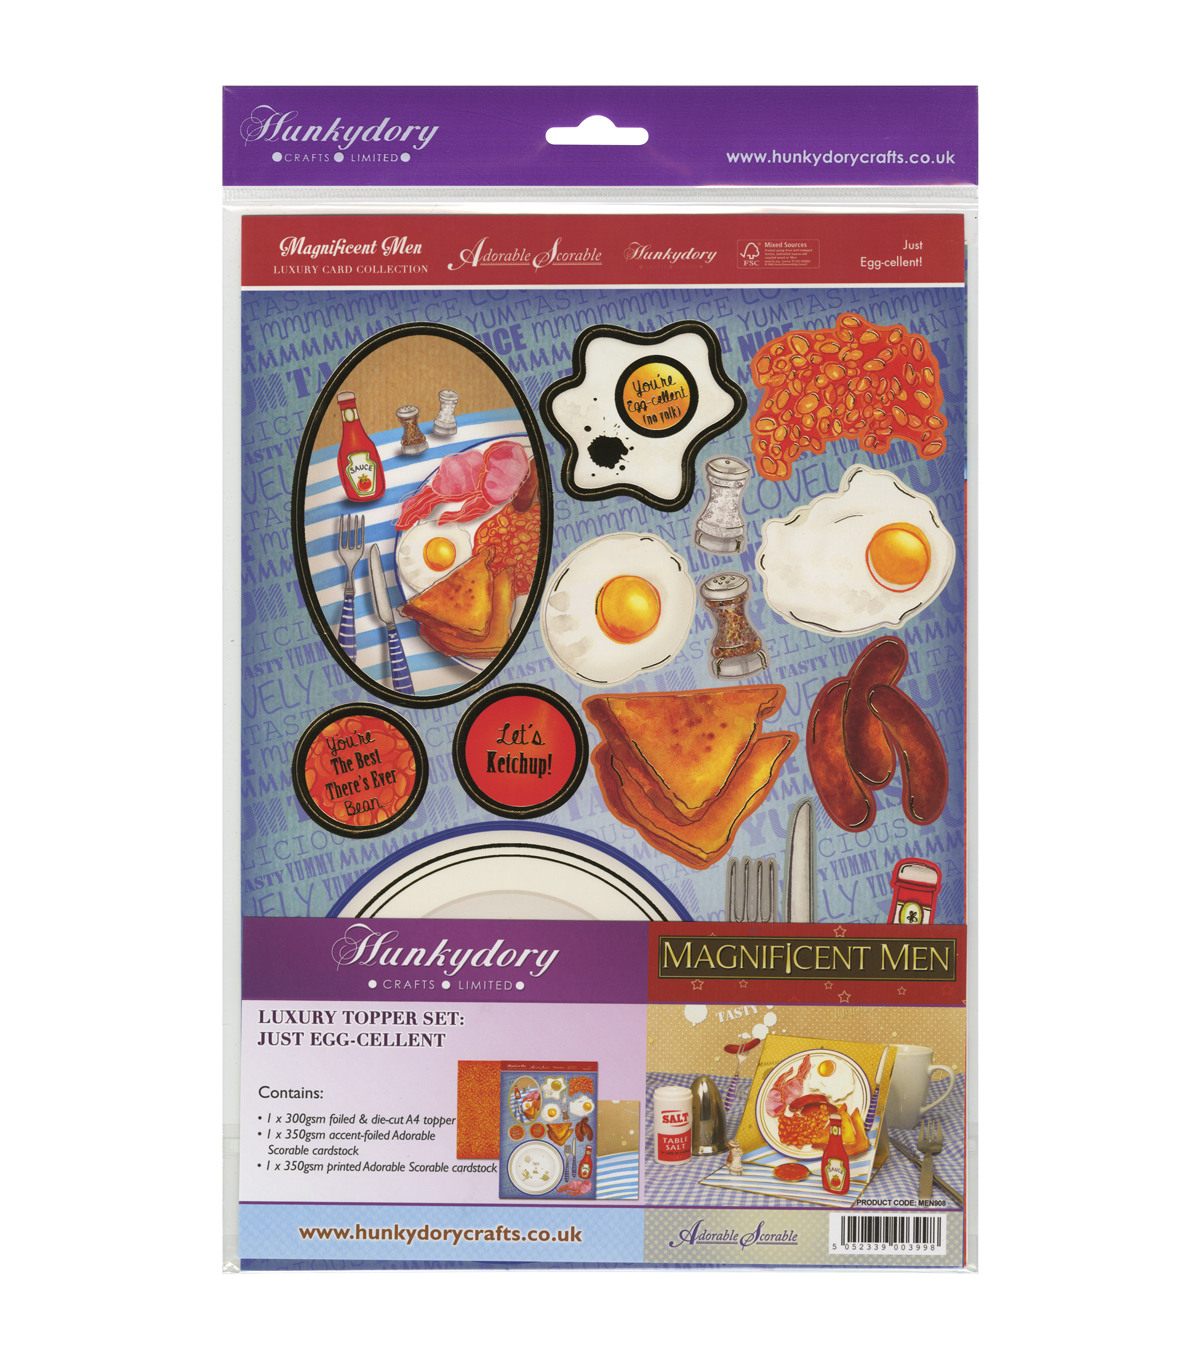 Hunkydory Crafts Magnificent Men Just Egg-Cellent Luxury Topper Set